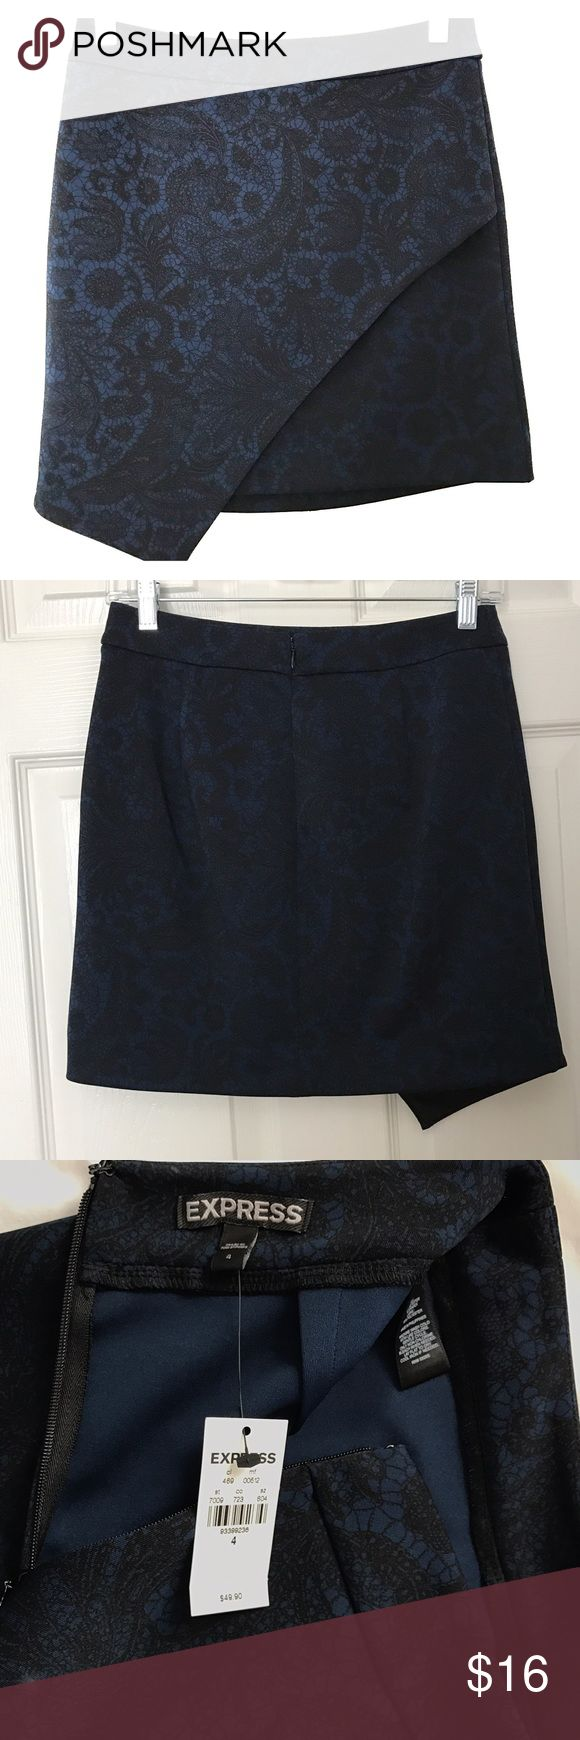 Express blue & black paisley asymmetrical skirt Never worn, NWT, dark blue with paisley detail pattern, zipper closure in back, express size 4, perfect going out skirt Express Skirts Asymmetrical